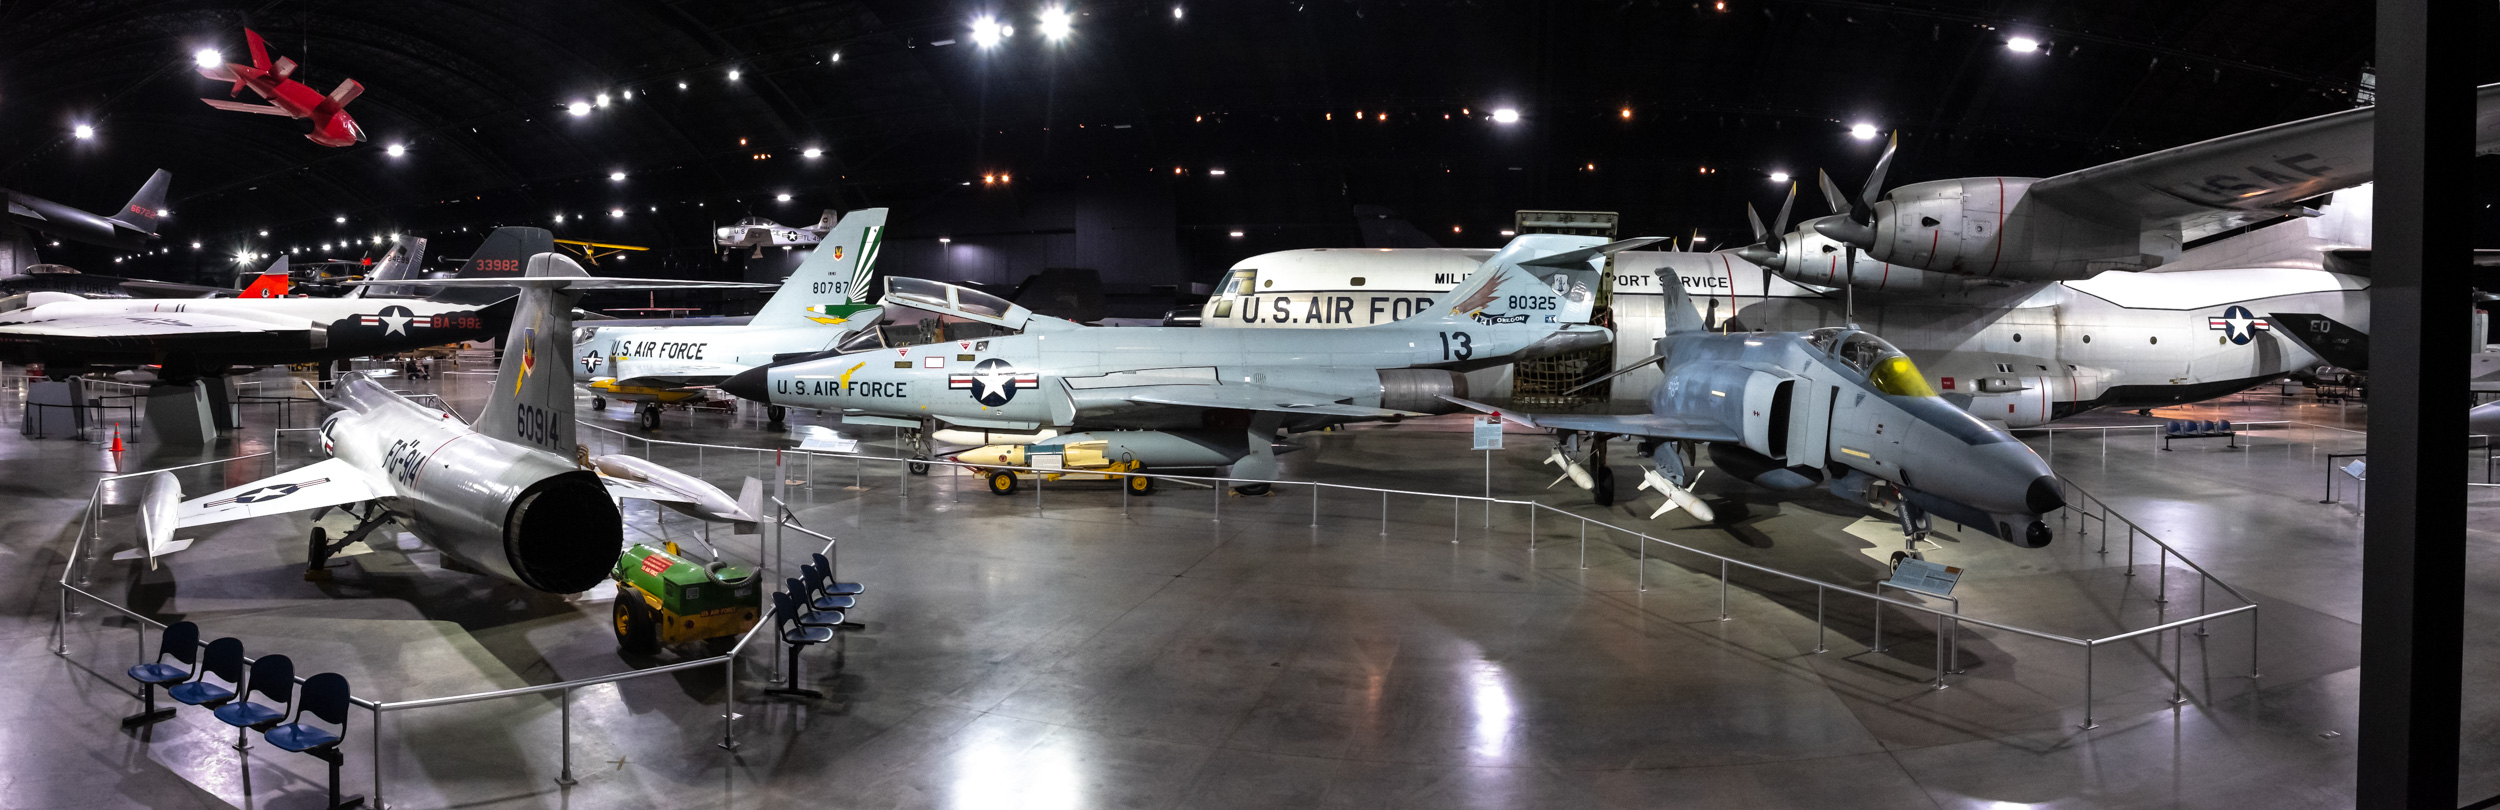 Cold War Exhibits at the National Museum of the US Air Force.